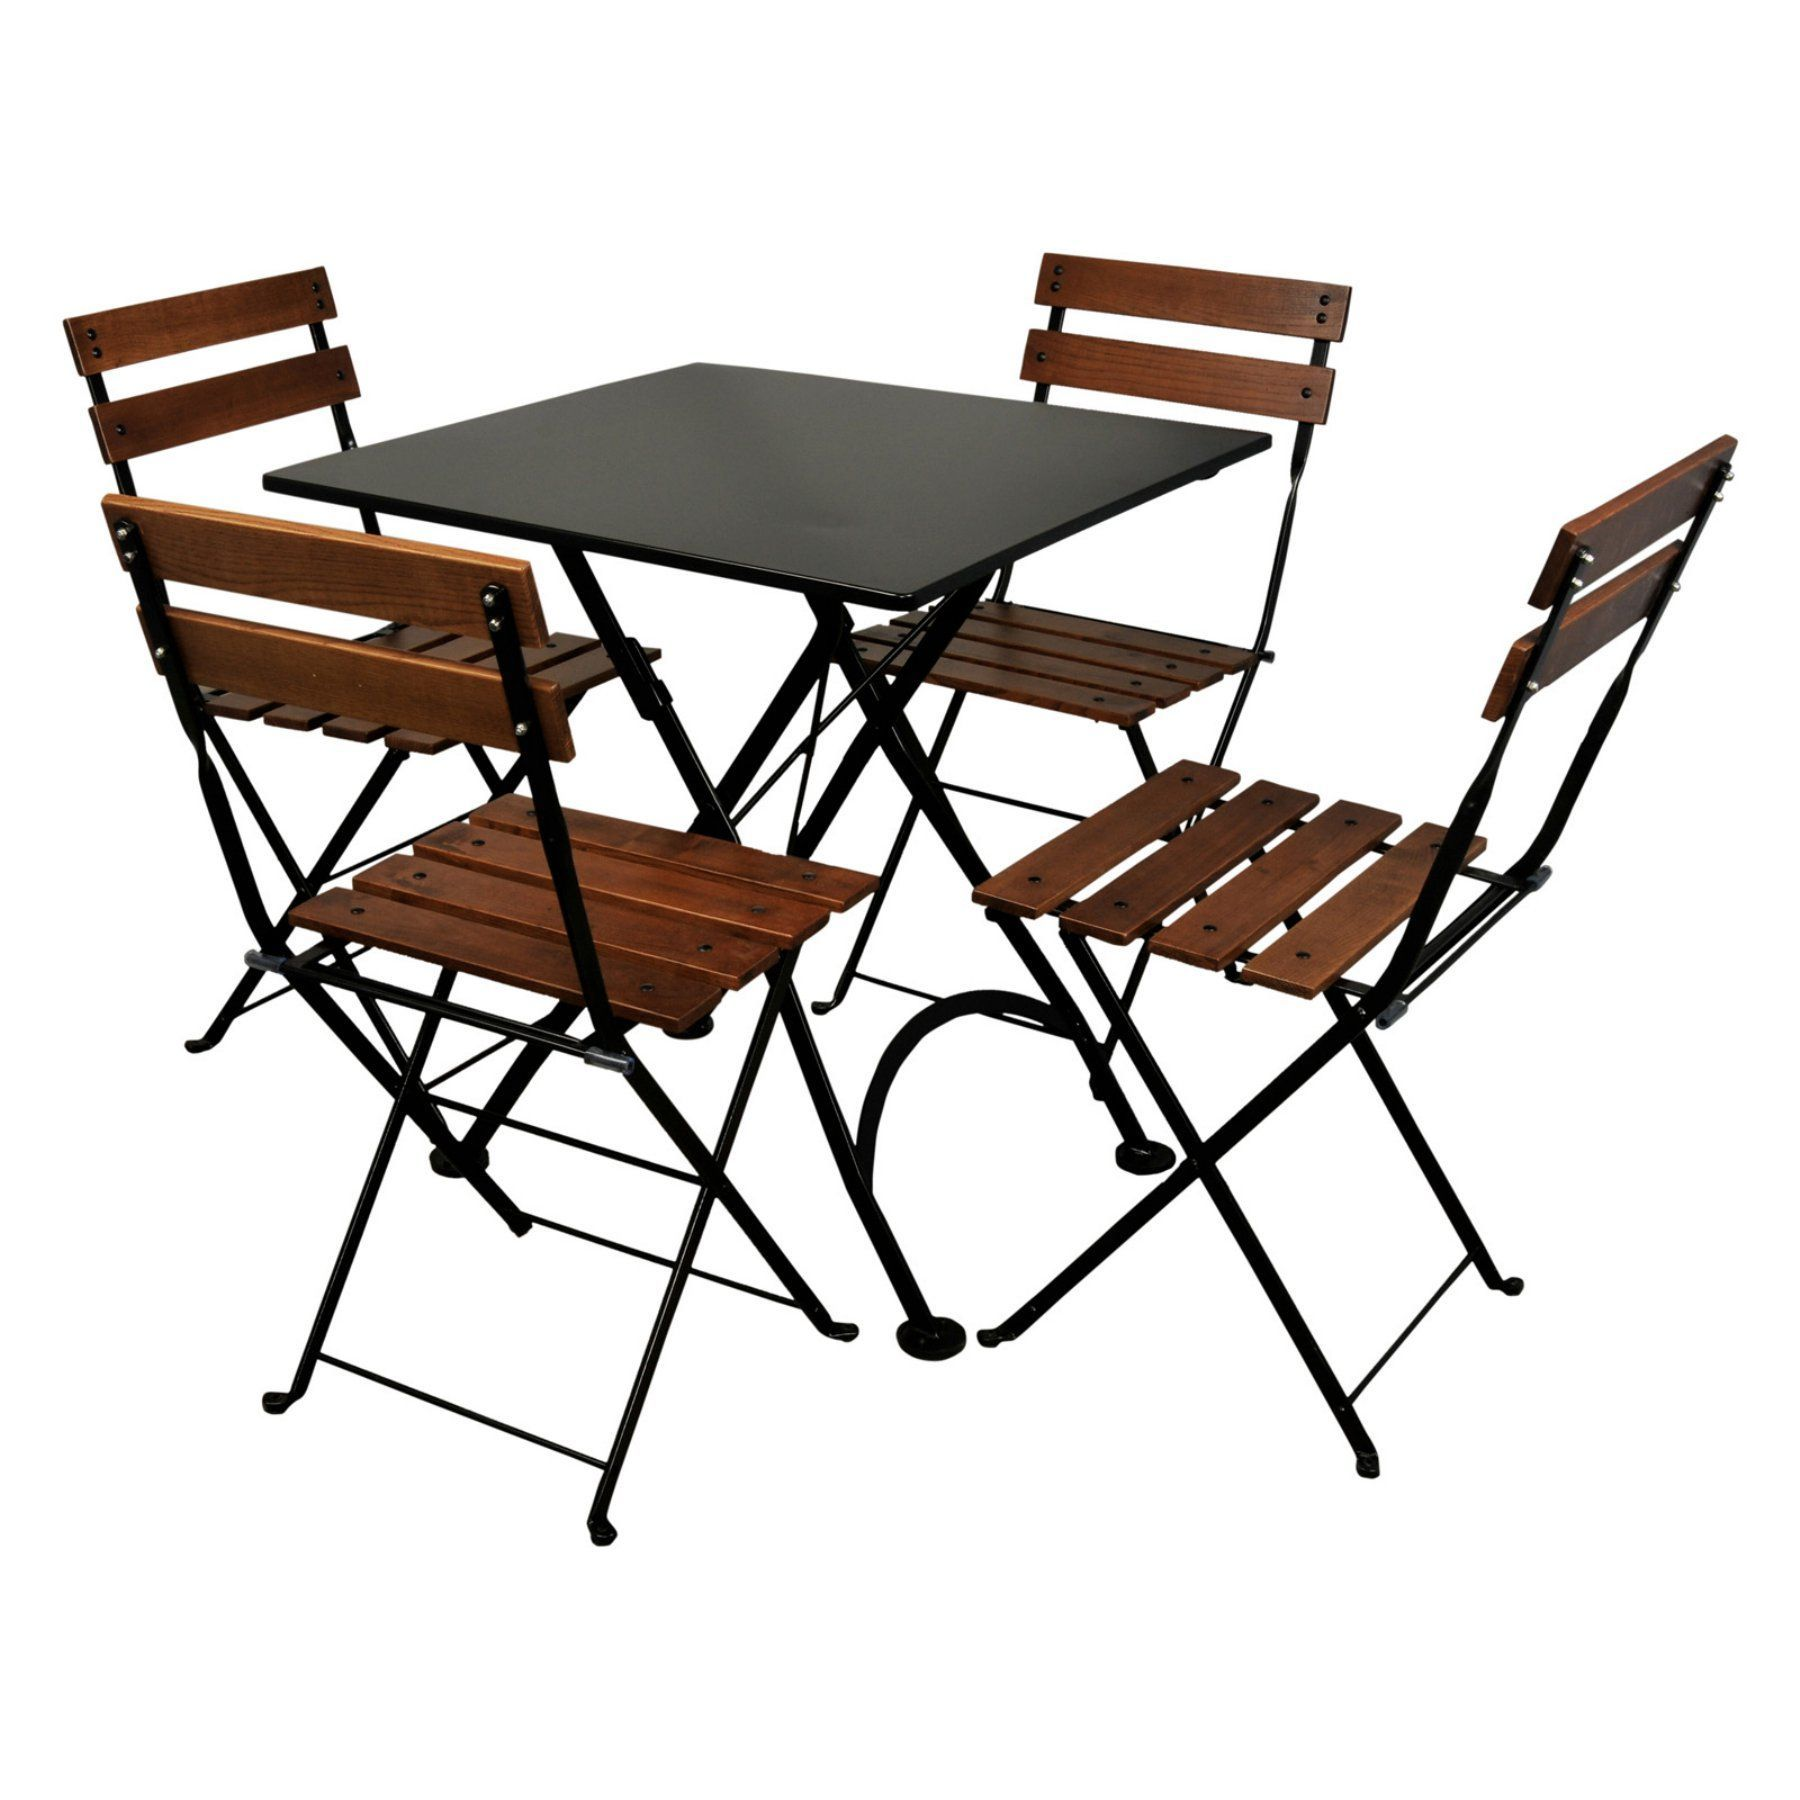 Outdoor Furniture Designhouse French Cafe Bistro Chestnut Wood 5 ...